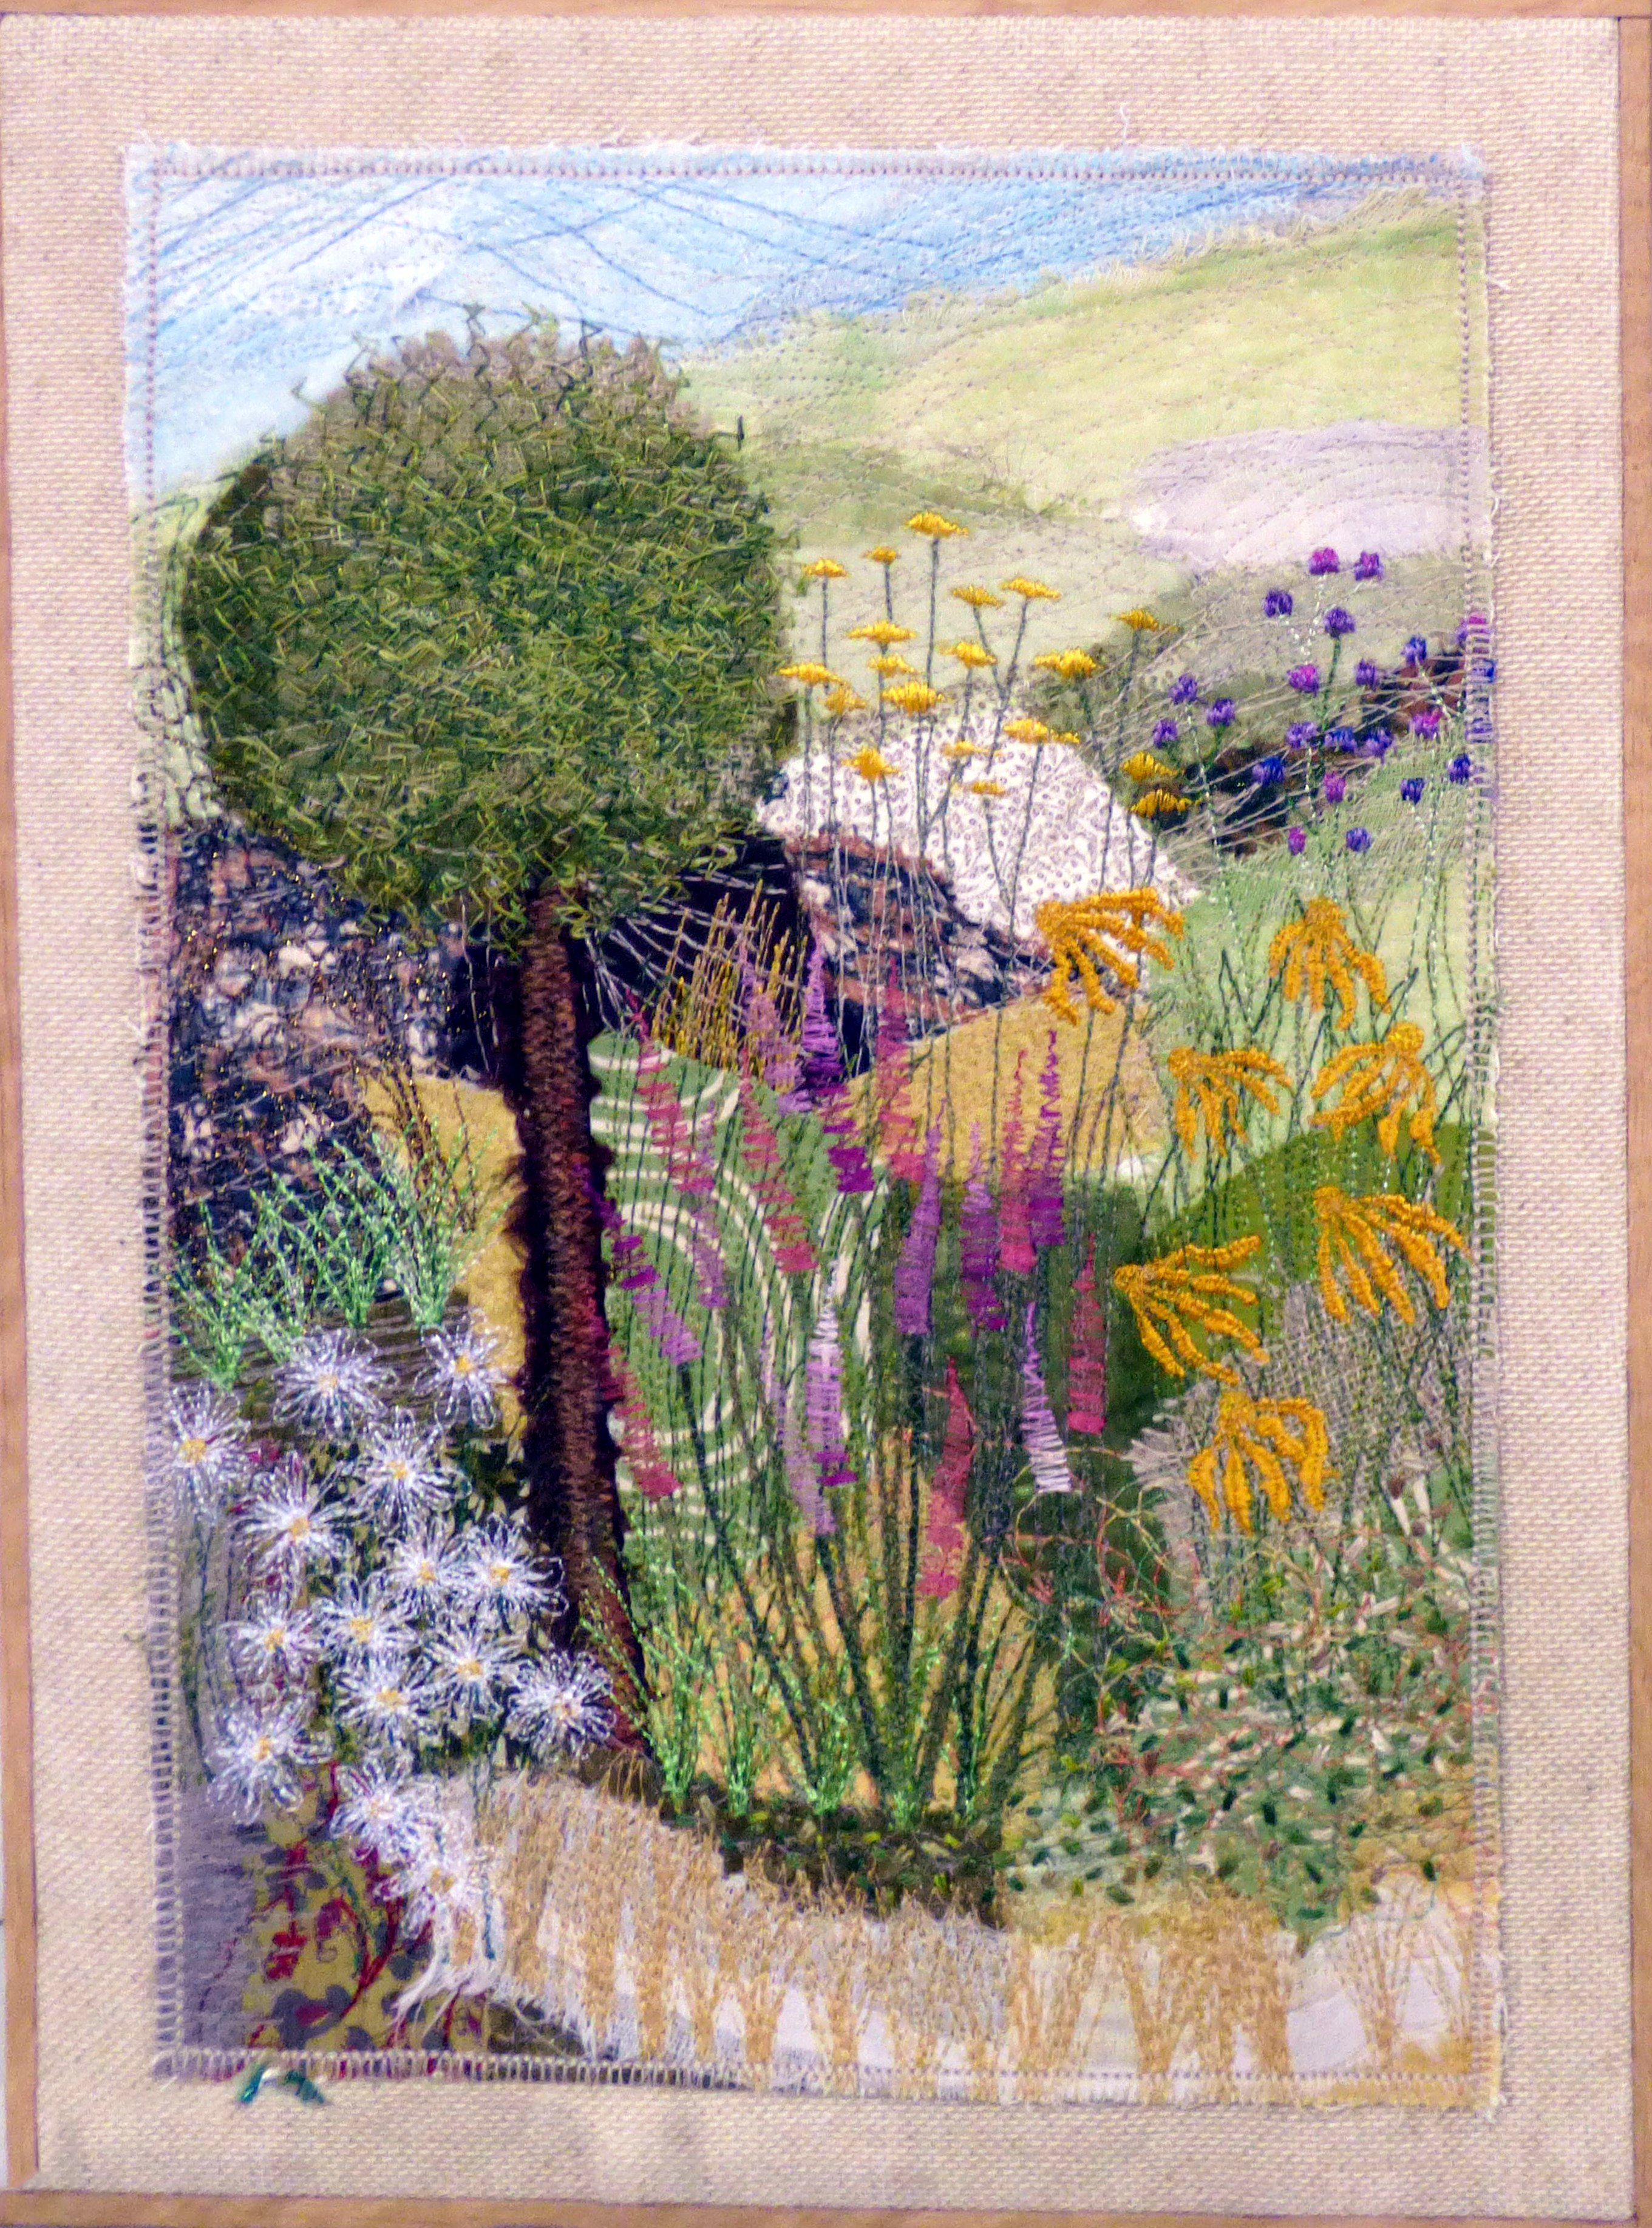 SUMMER DREAMS by Marian Williams, N.Wales EG, hand & machine embroidery